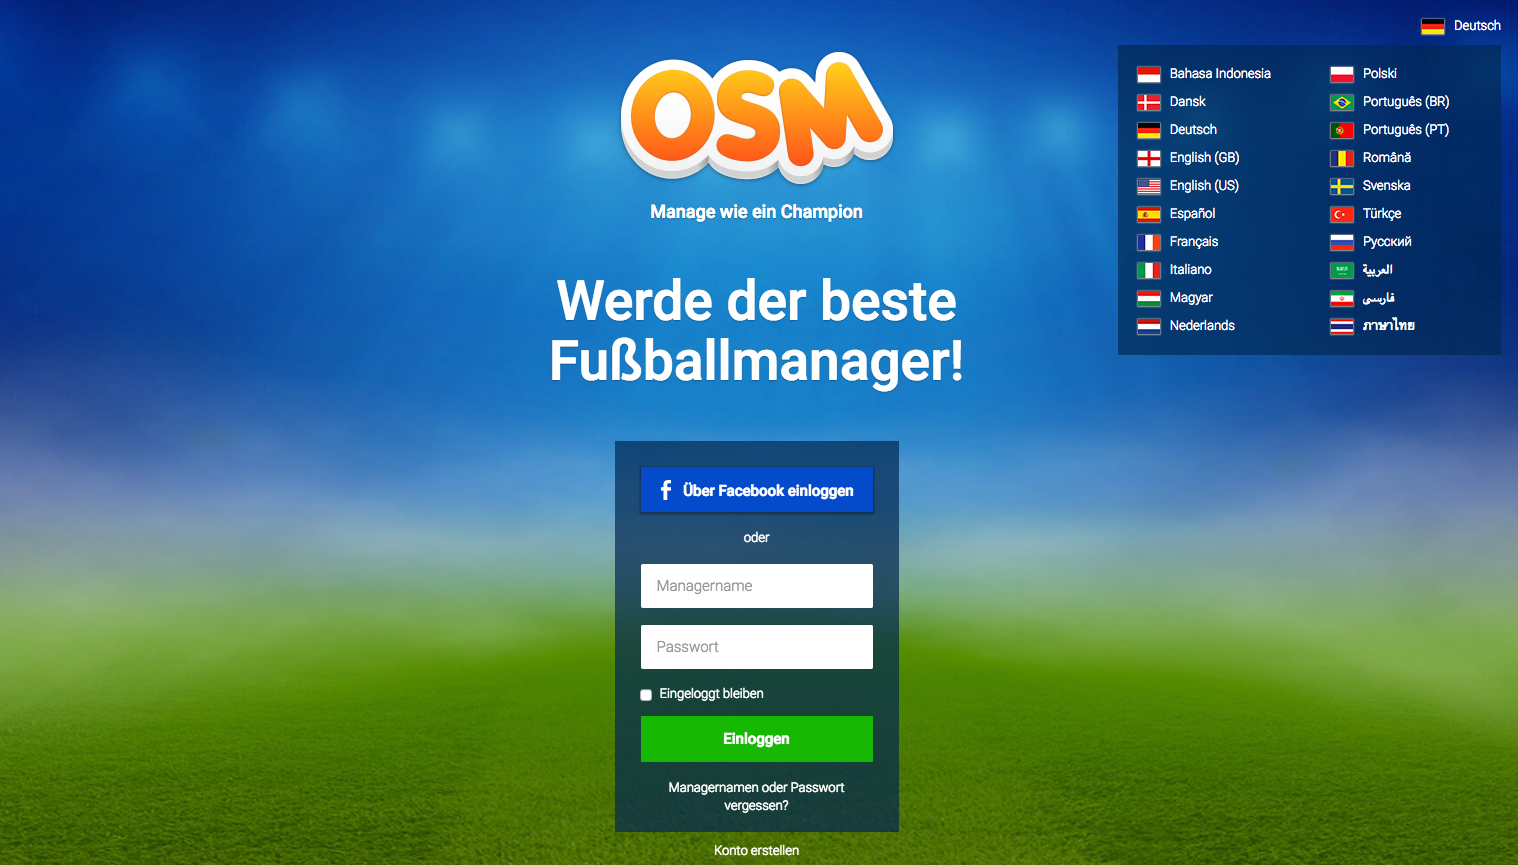 0_1541958553489_FireShot Capture 10 - Online Soccer Manager (OSM) – Zeit_ - https___de.onlinesoccermanager.com_Login.png